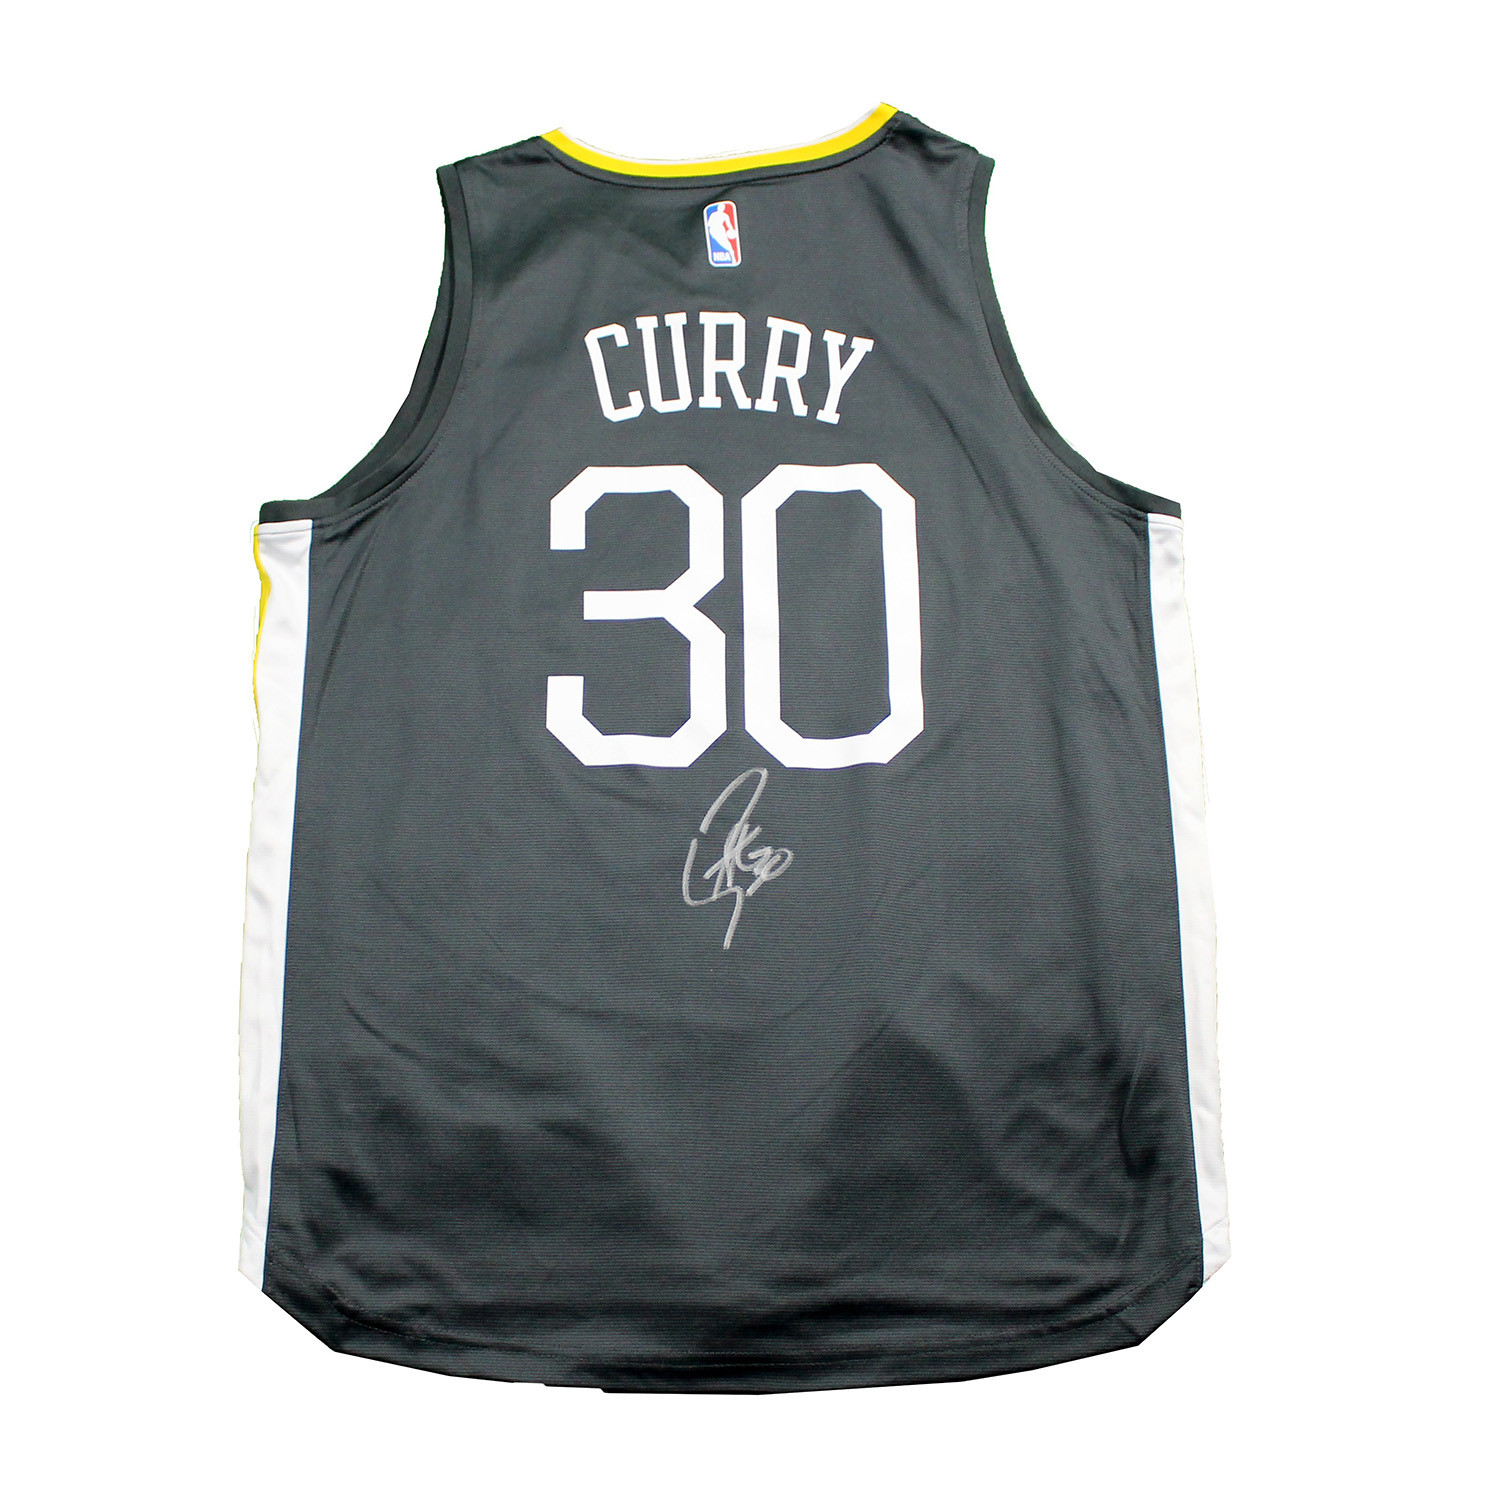 huge selection of 2d58c c11ed Stephen Curry Signed Golden State Warriors Replica Jersey ...